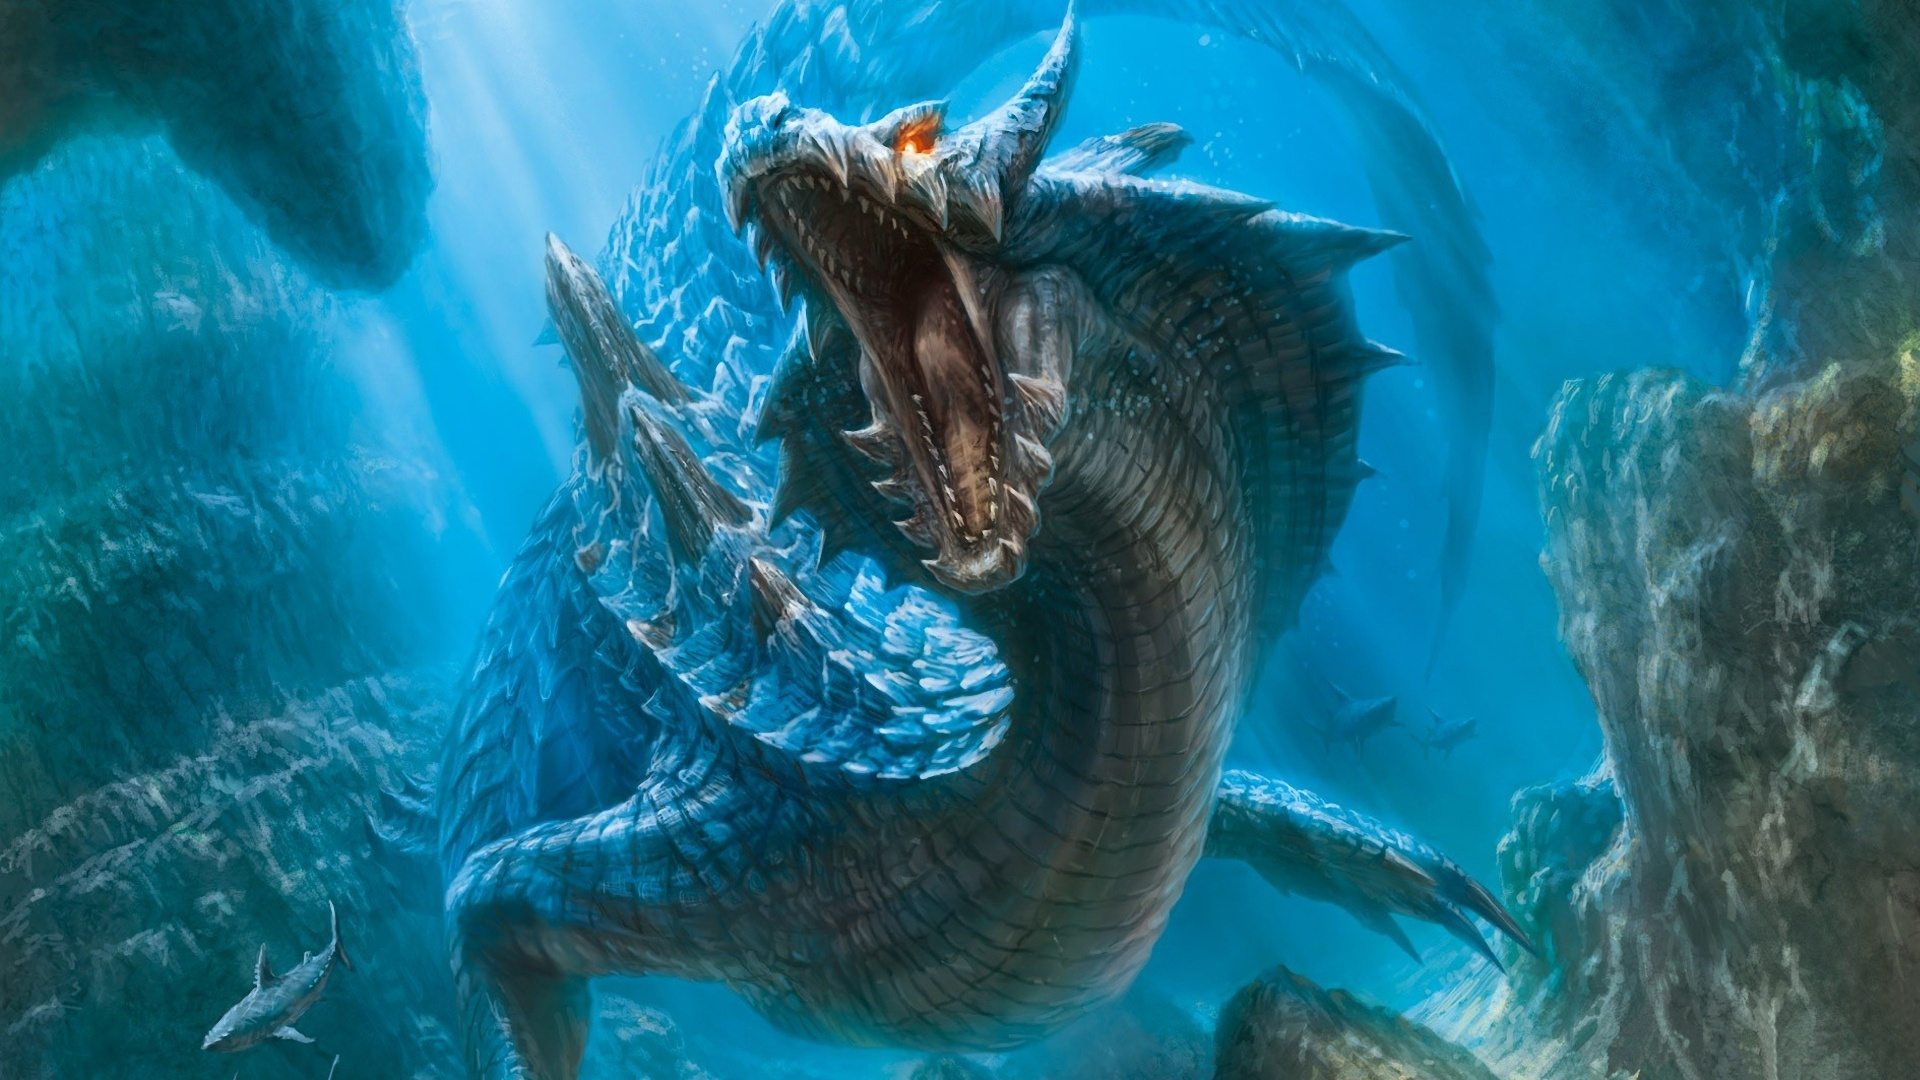 Dragon in the underwater